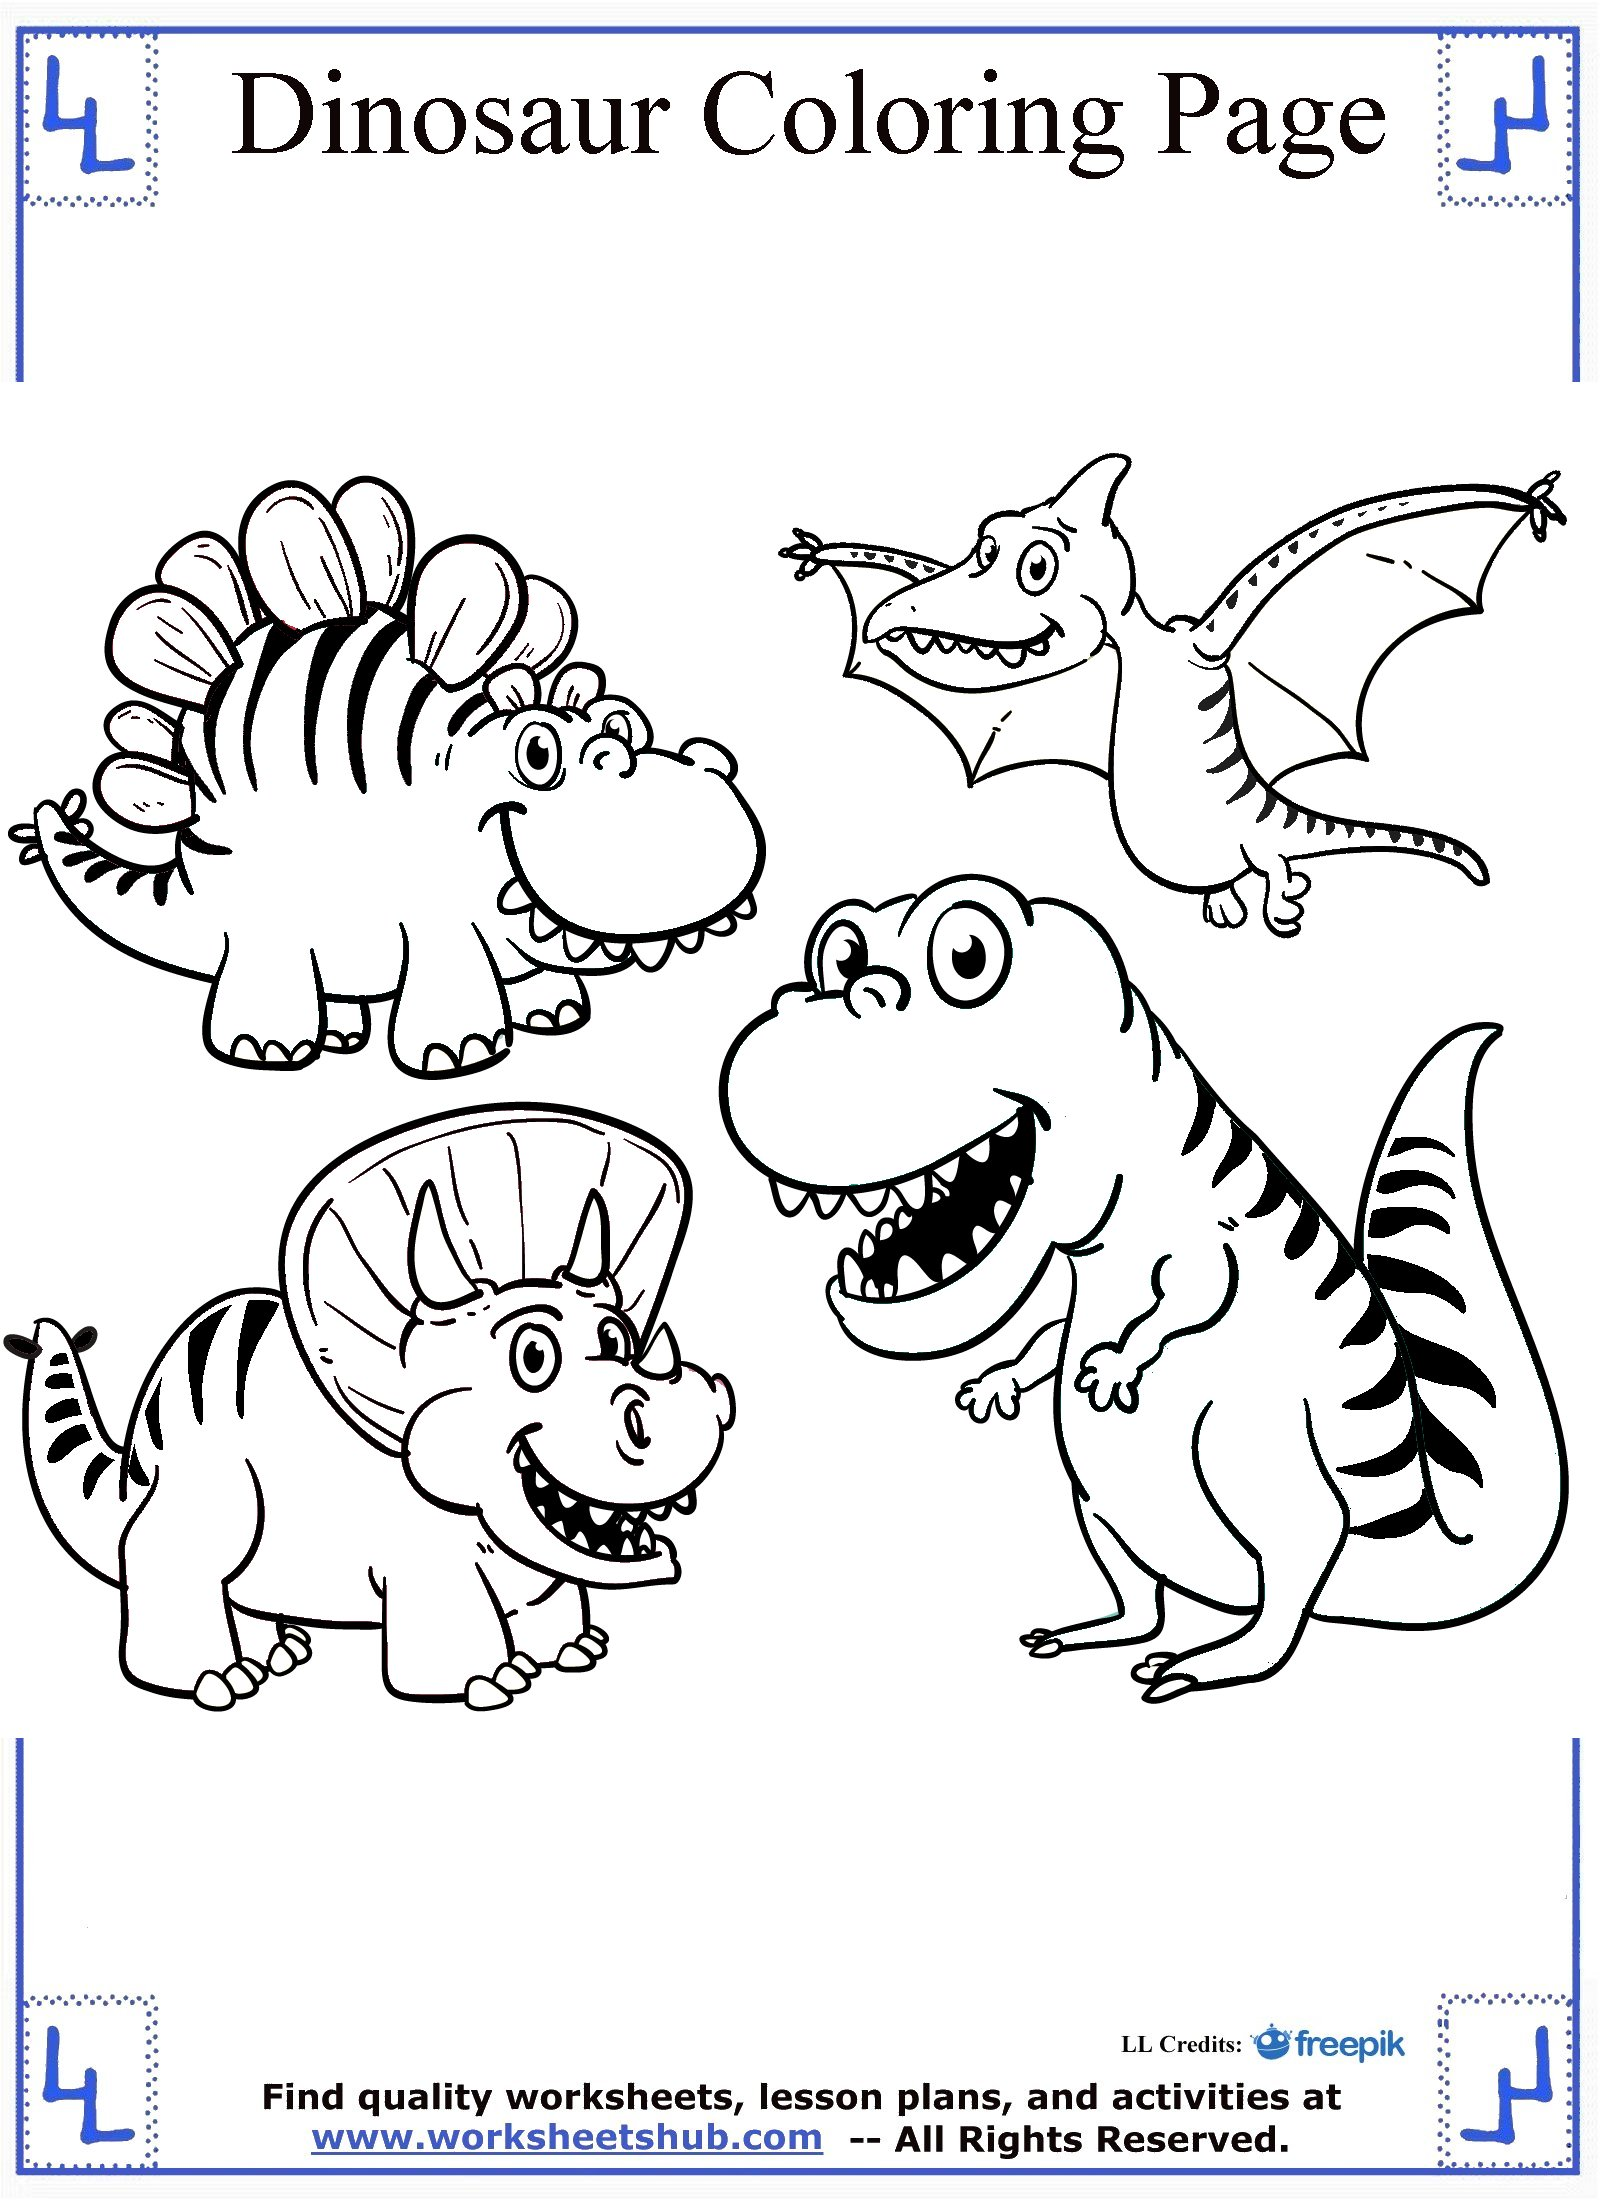 Dinosaur coloring in pictures - Dinosaur Coloring Pages 10